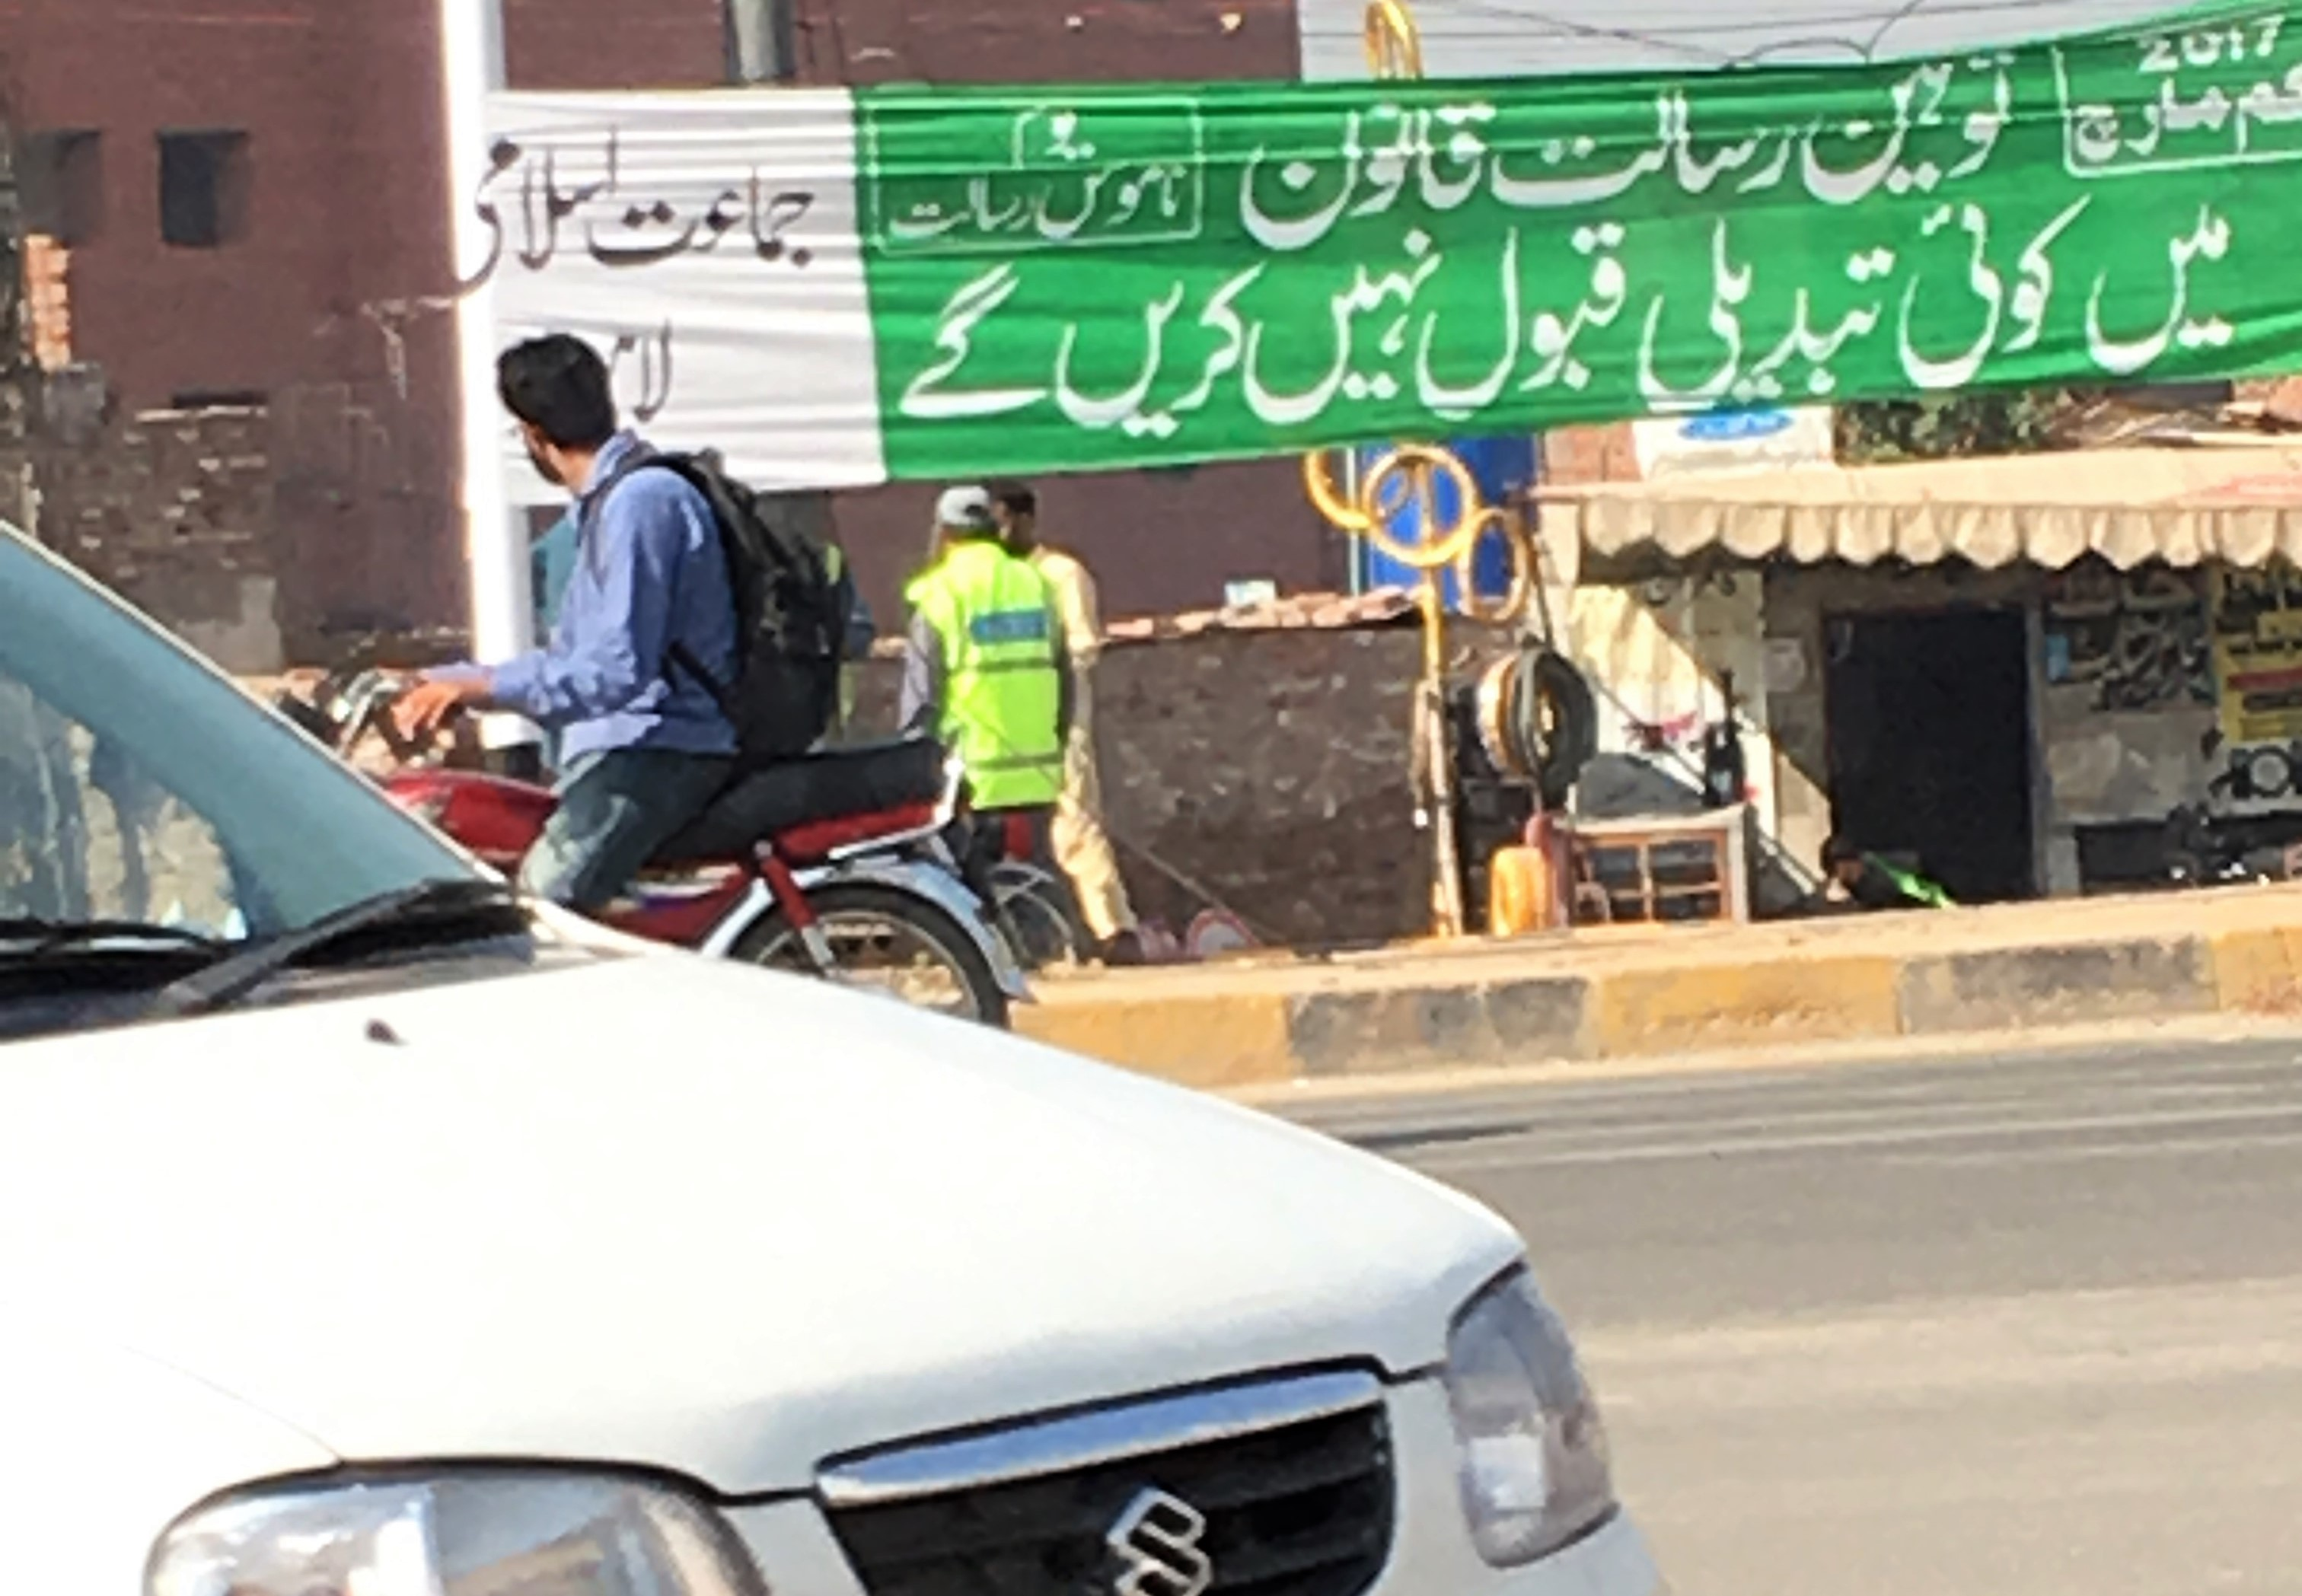 Banner protesting against changes to the blasphemy laws, Peshawar 2017 (World Watch Monitor)